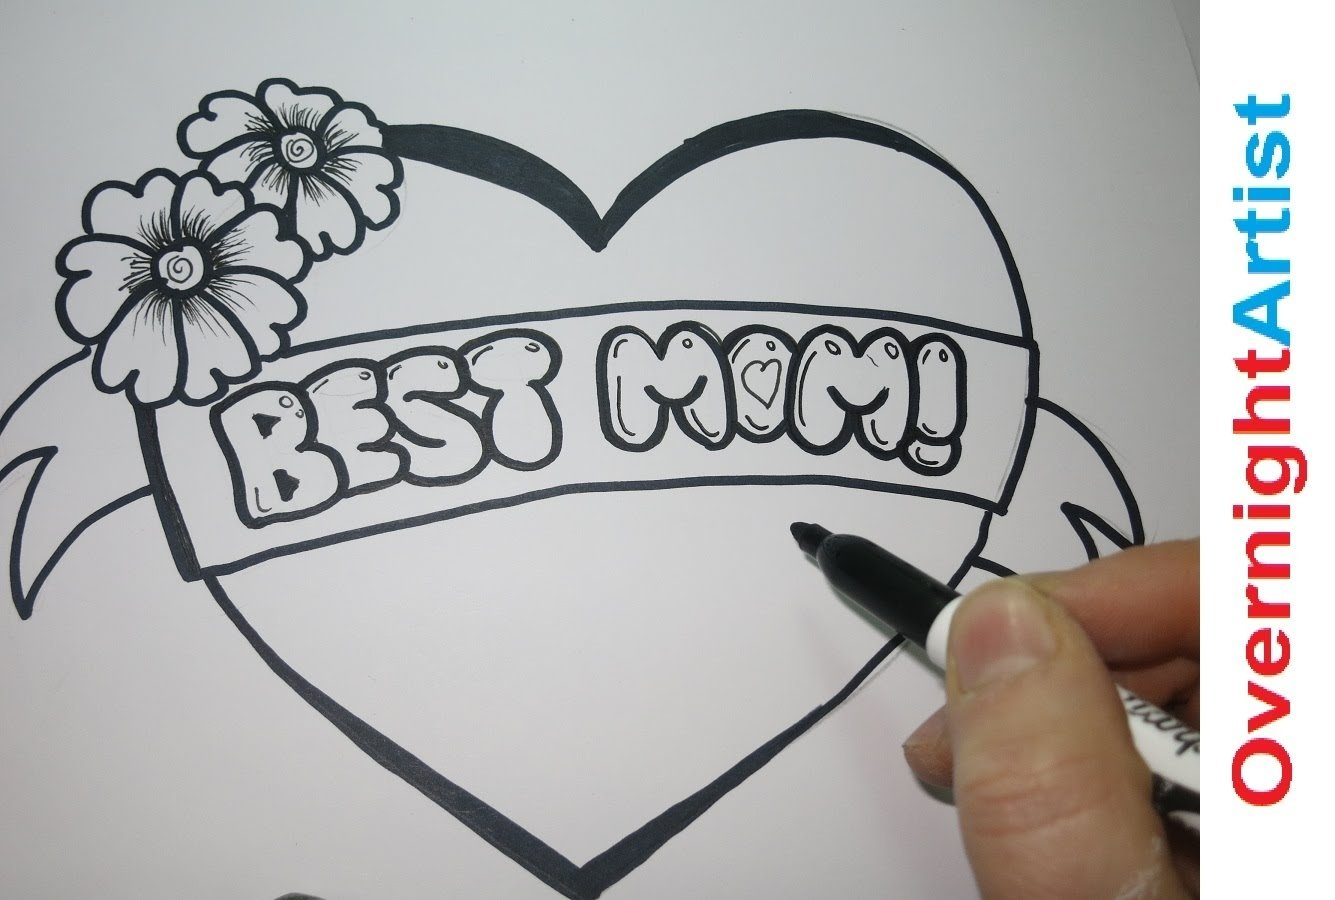 10 Attractive Ideas On What To Draw mothers day drawing ideas draw best mom how to draw best mom